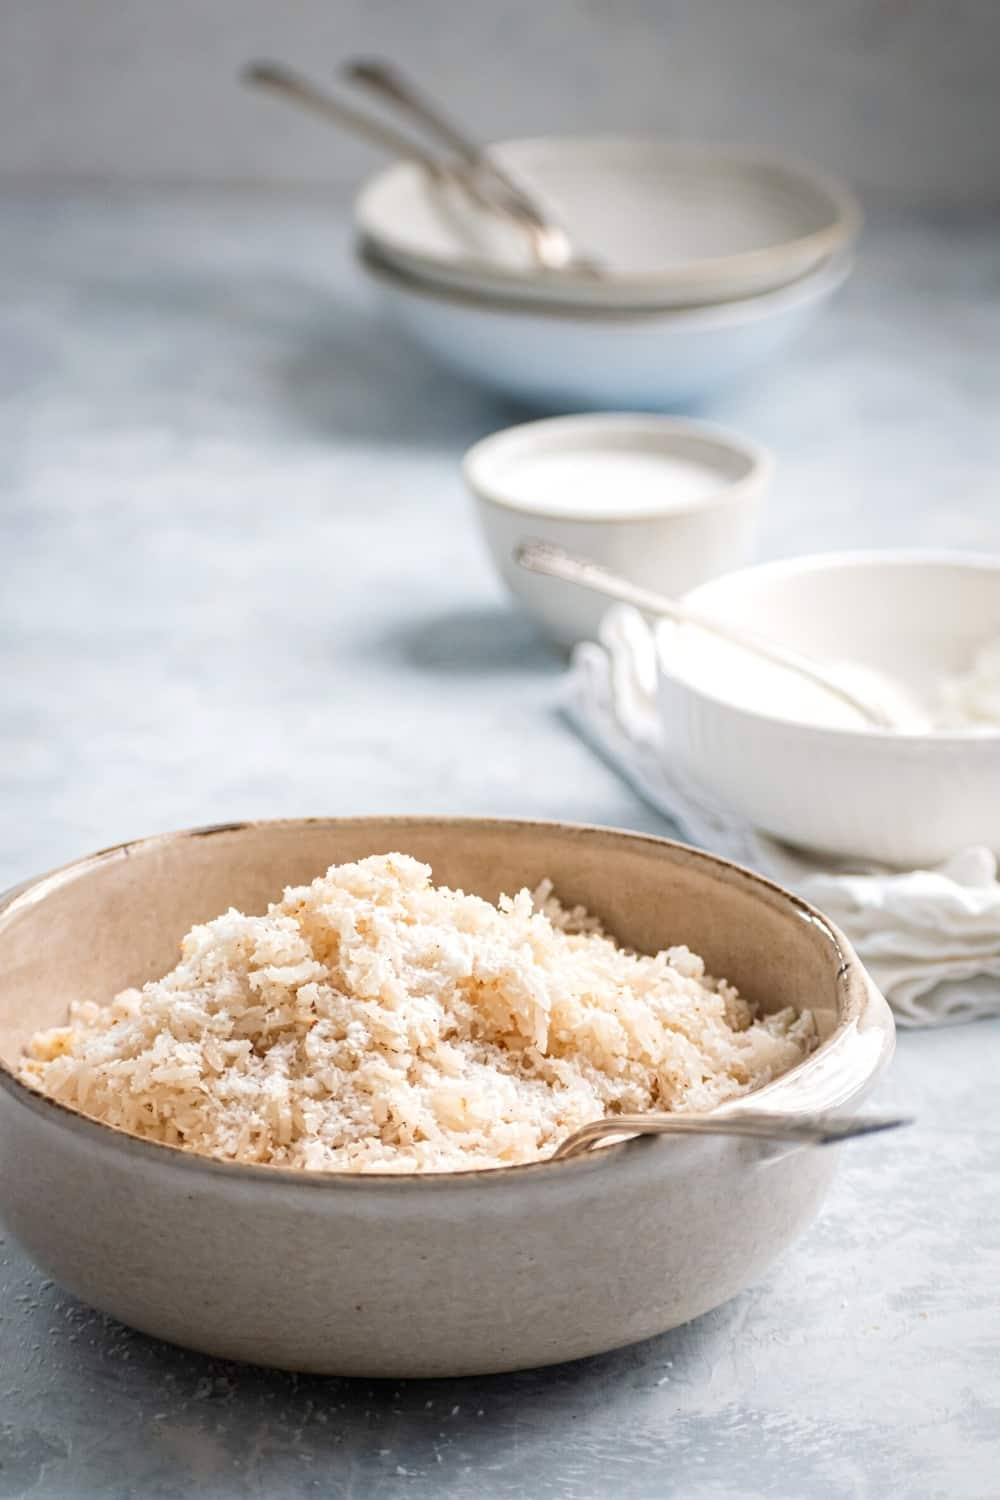 A white bowl filled with coconut rice. There is a fork submerged in the rice and behind the bowl or a few empty white bowls.